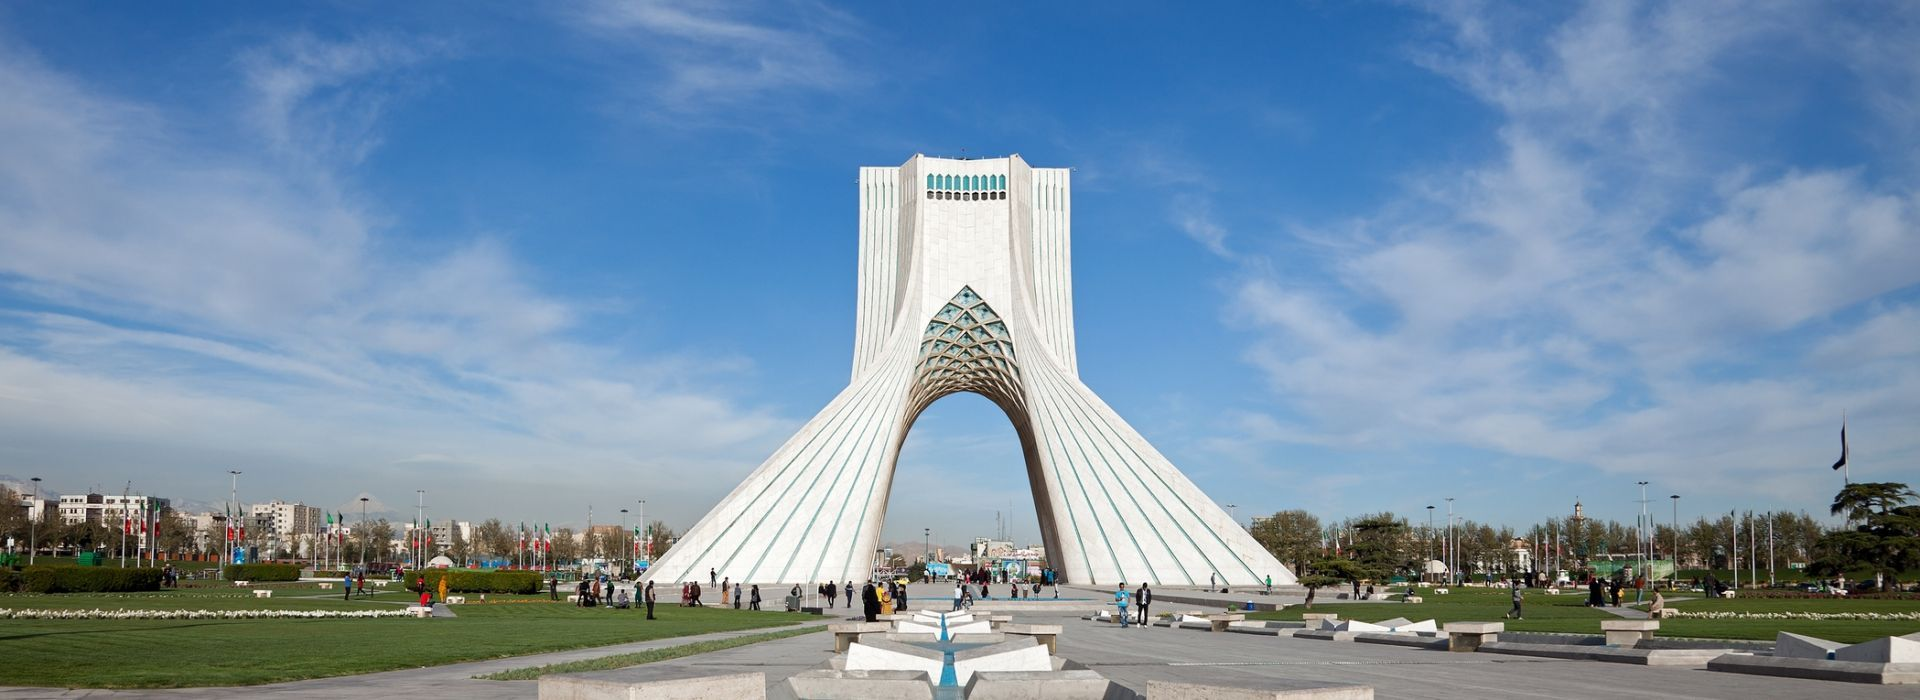 City sightseeing Tours in Tehran